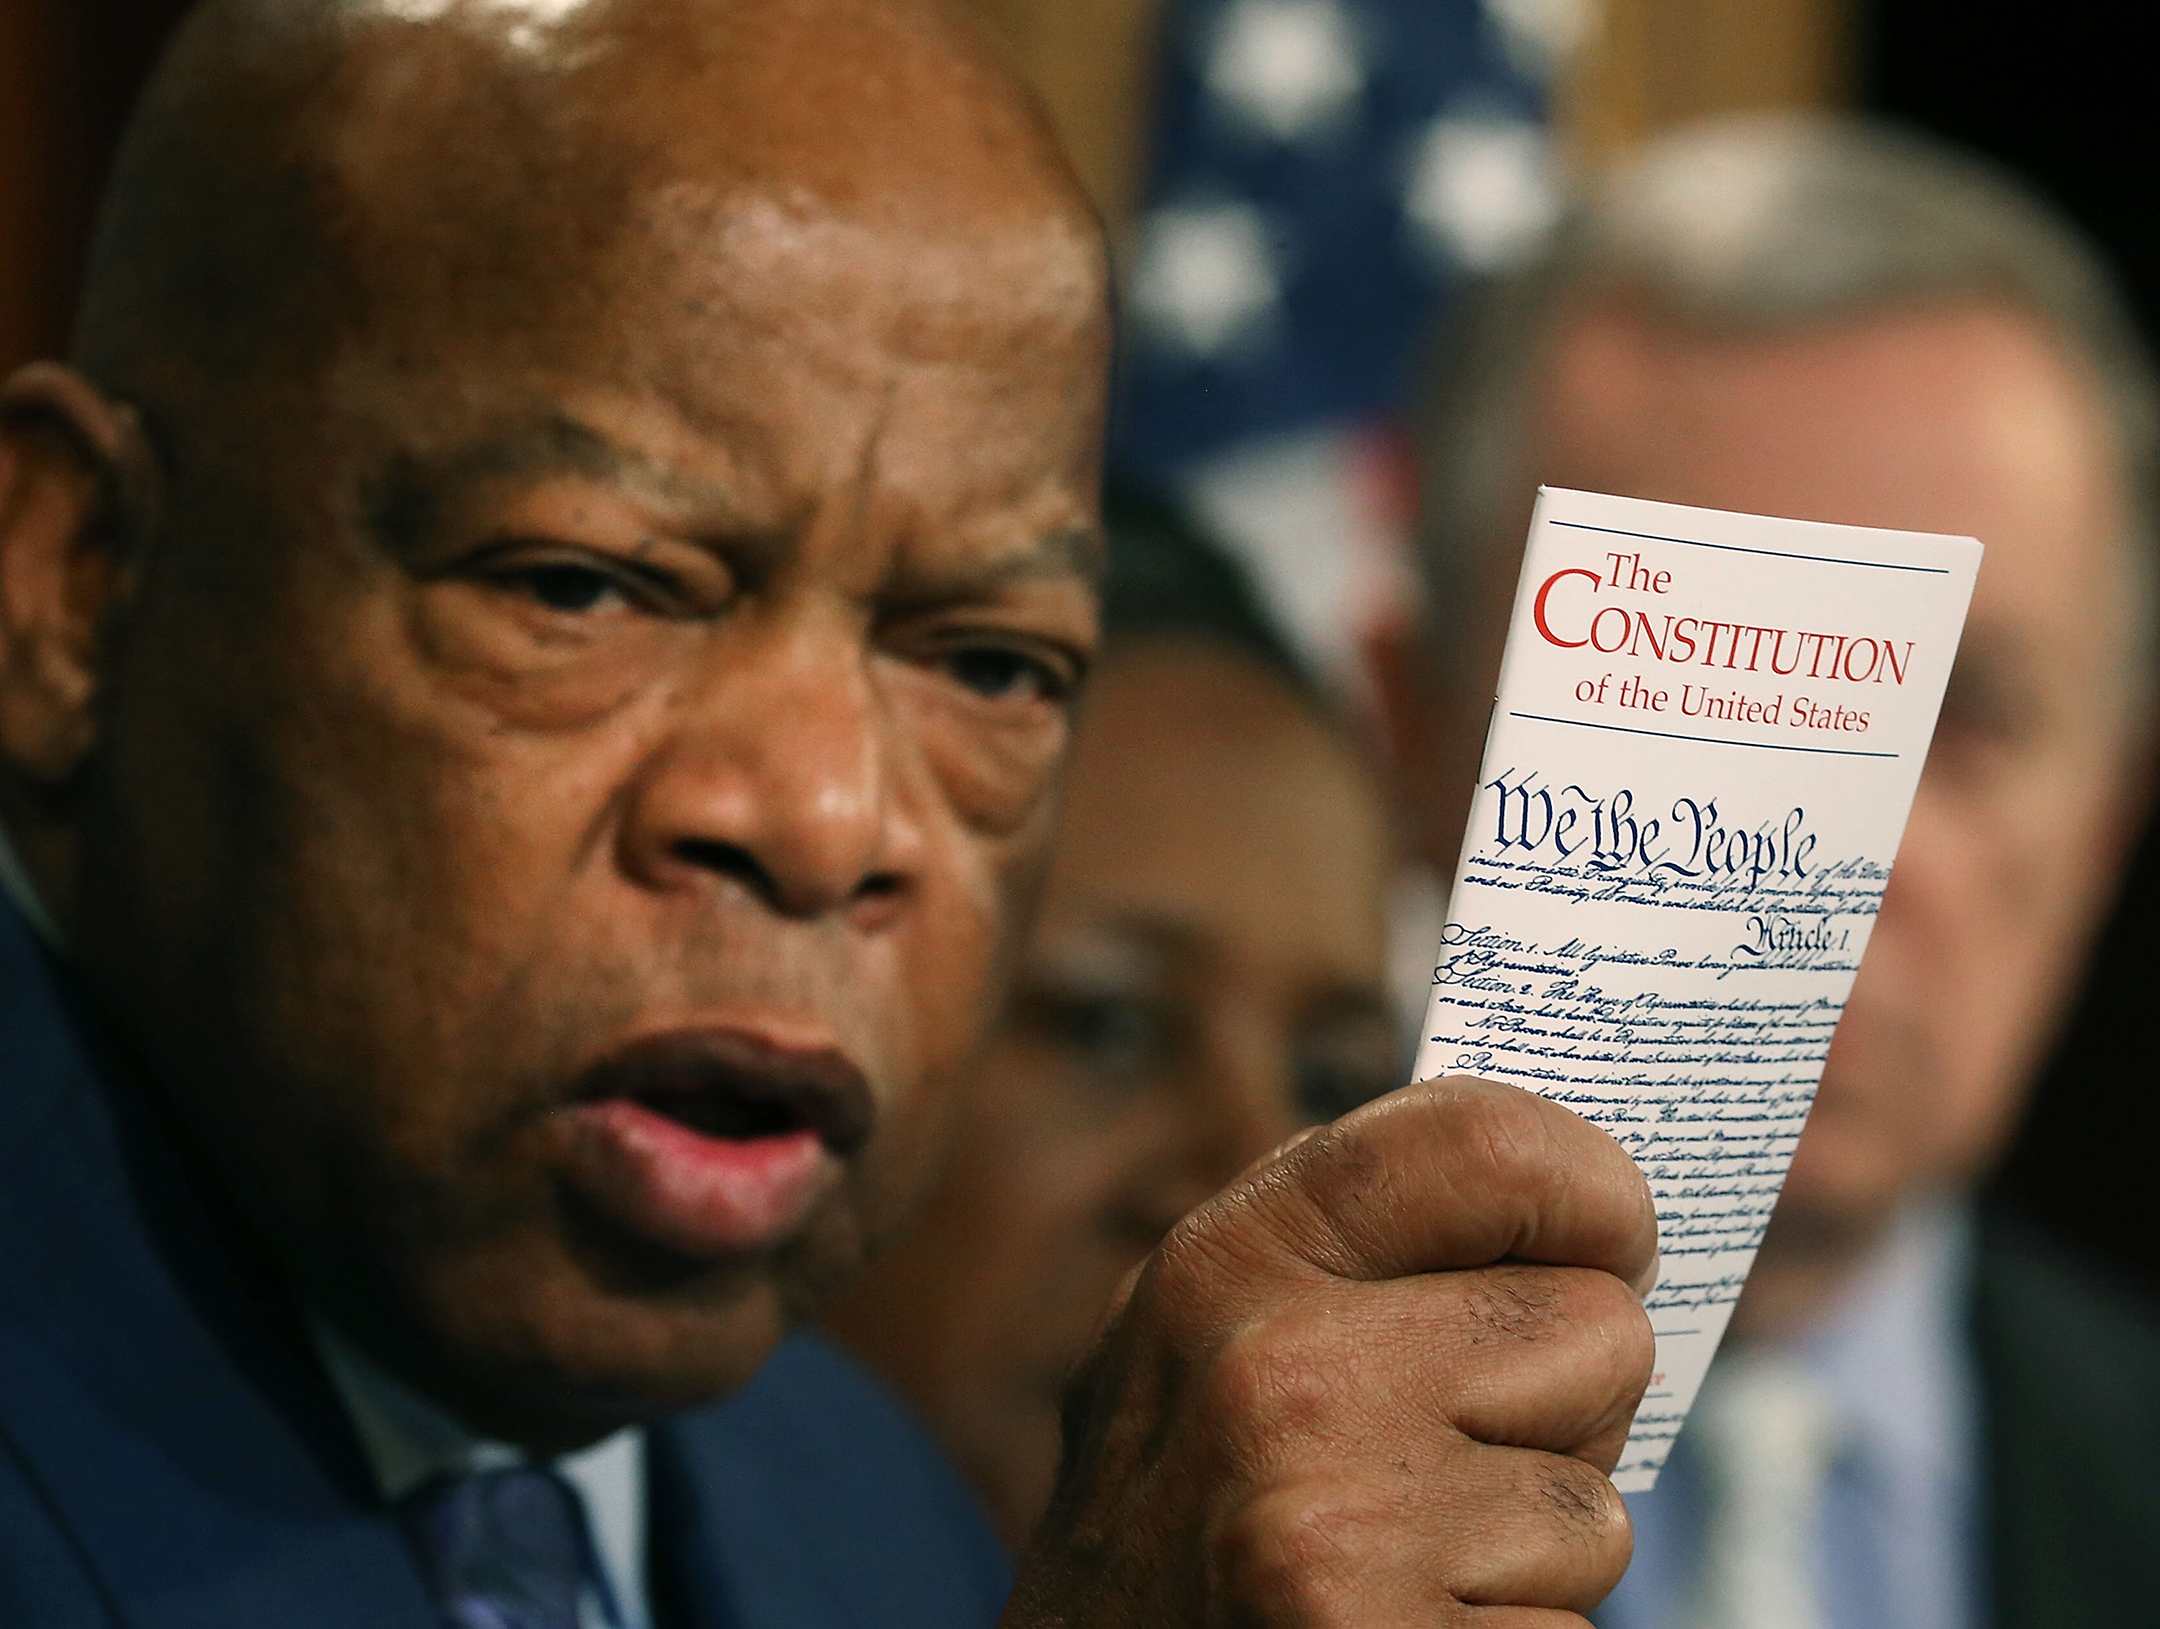 Photograph of John Lewis holding a pocket-sized Constitution, with the Constitution in focus in the foreground